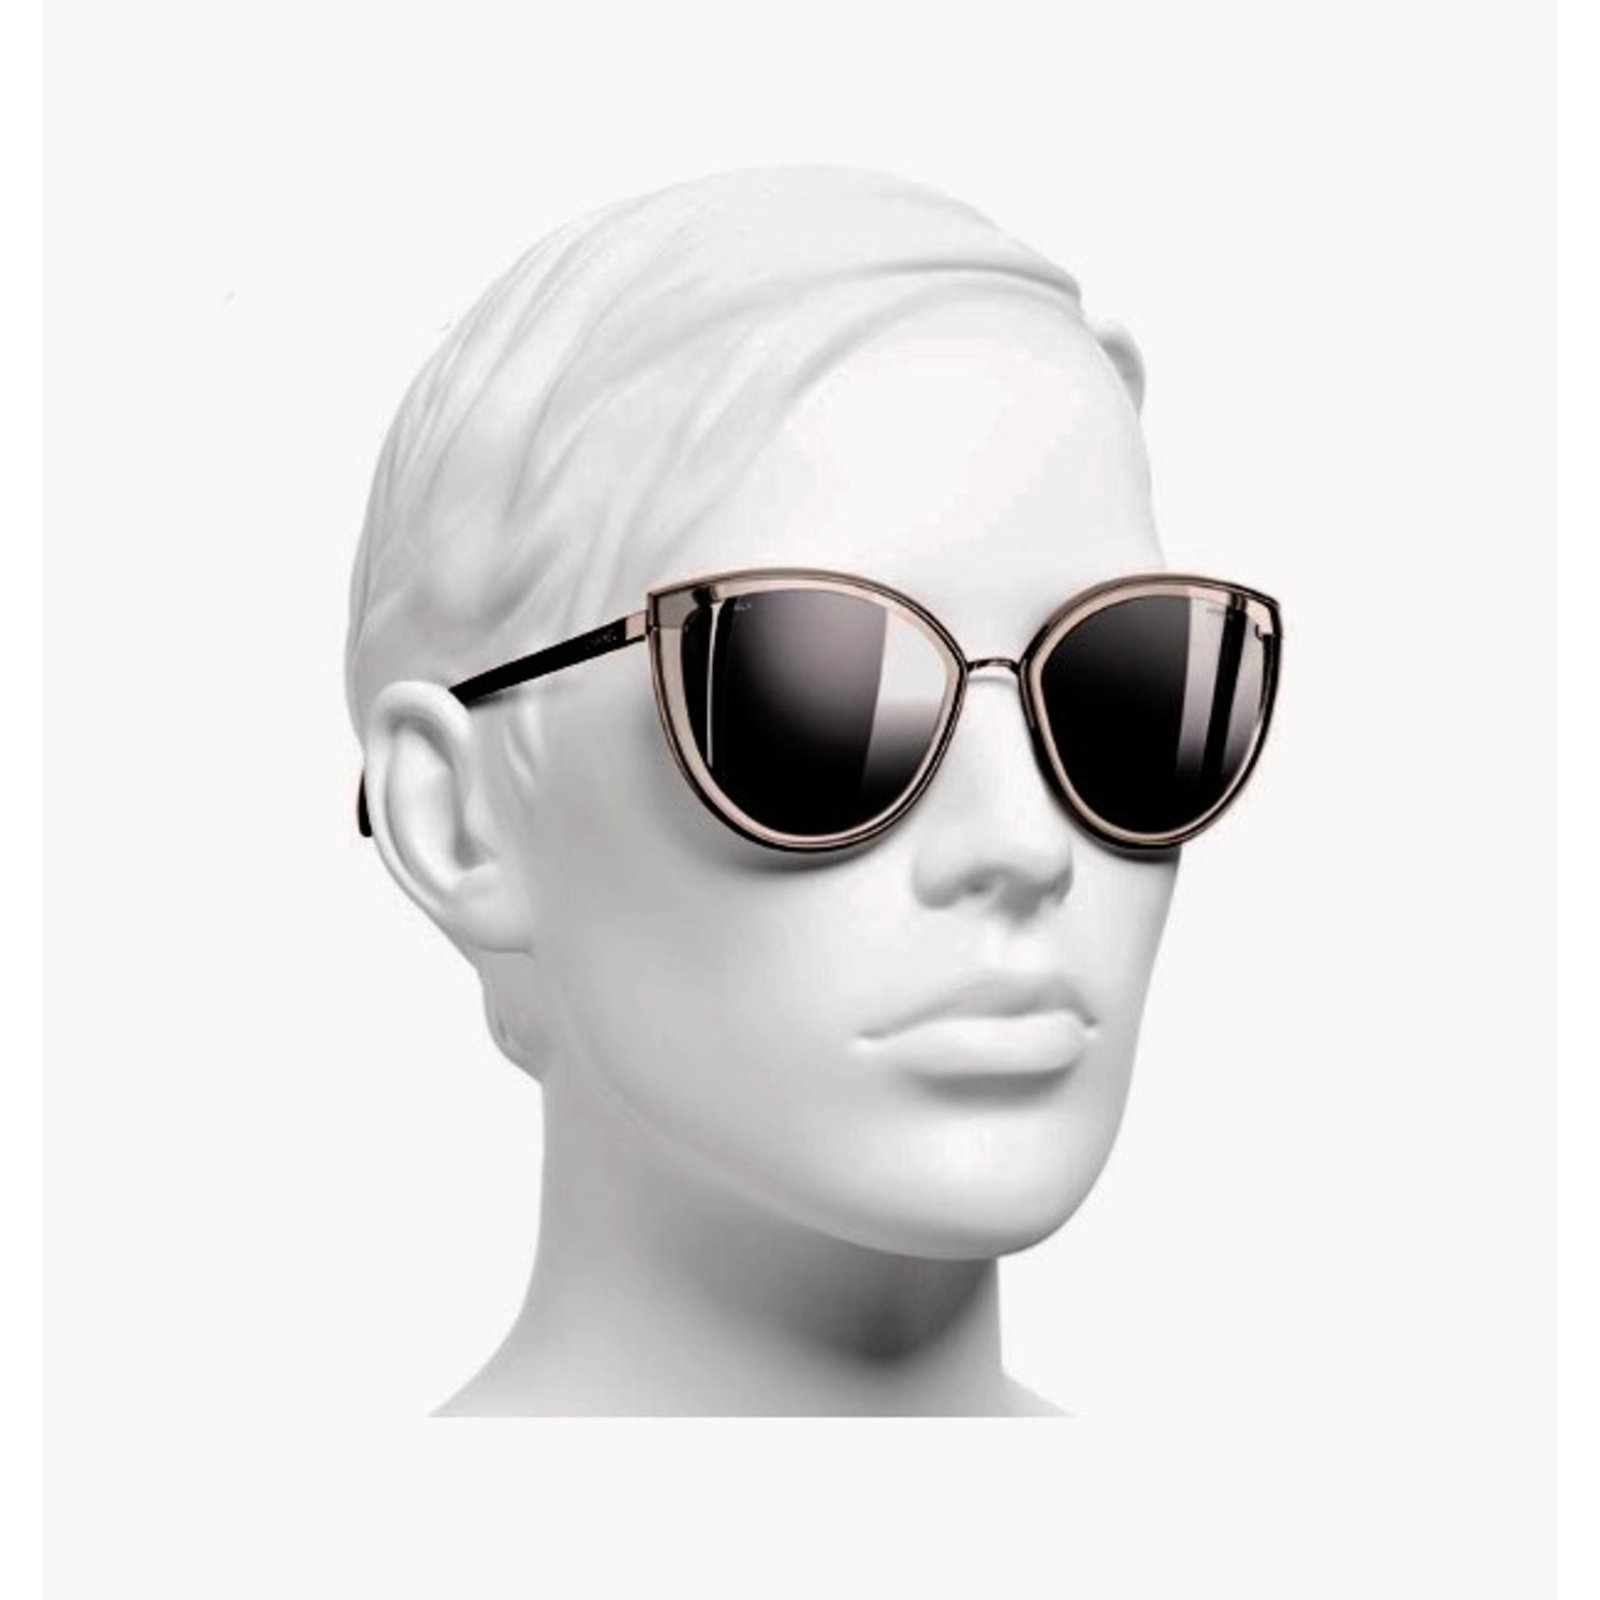 51a5d57b0d6d Chanel Summer cat eye sunglasses Sunglasses Metal Silvery ref.41125 - Joli  Closet